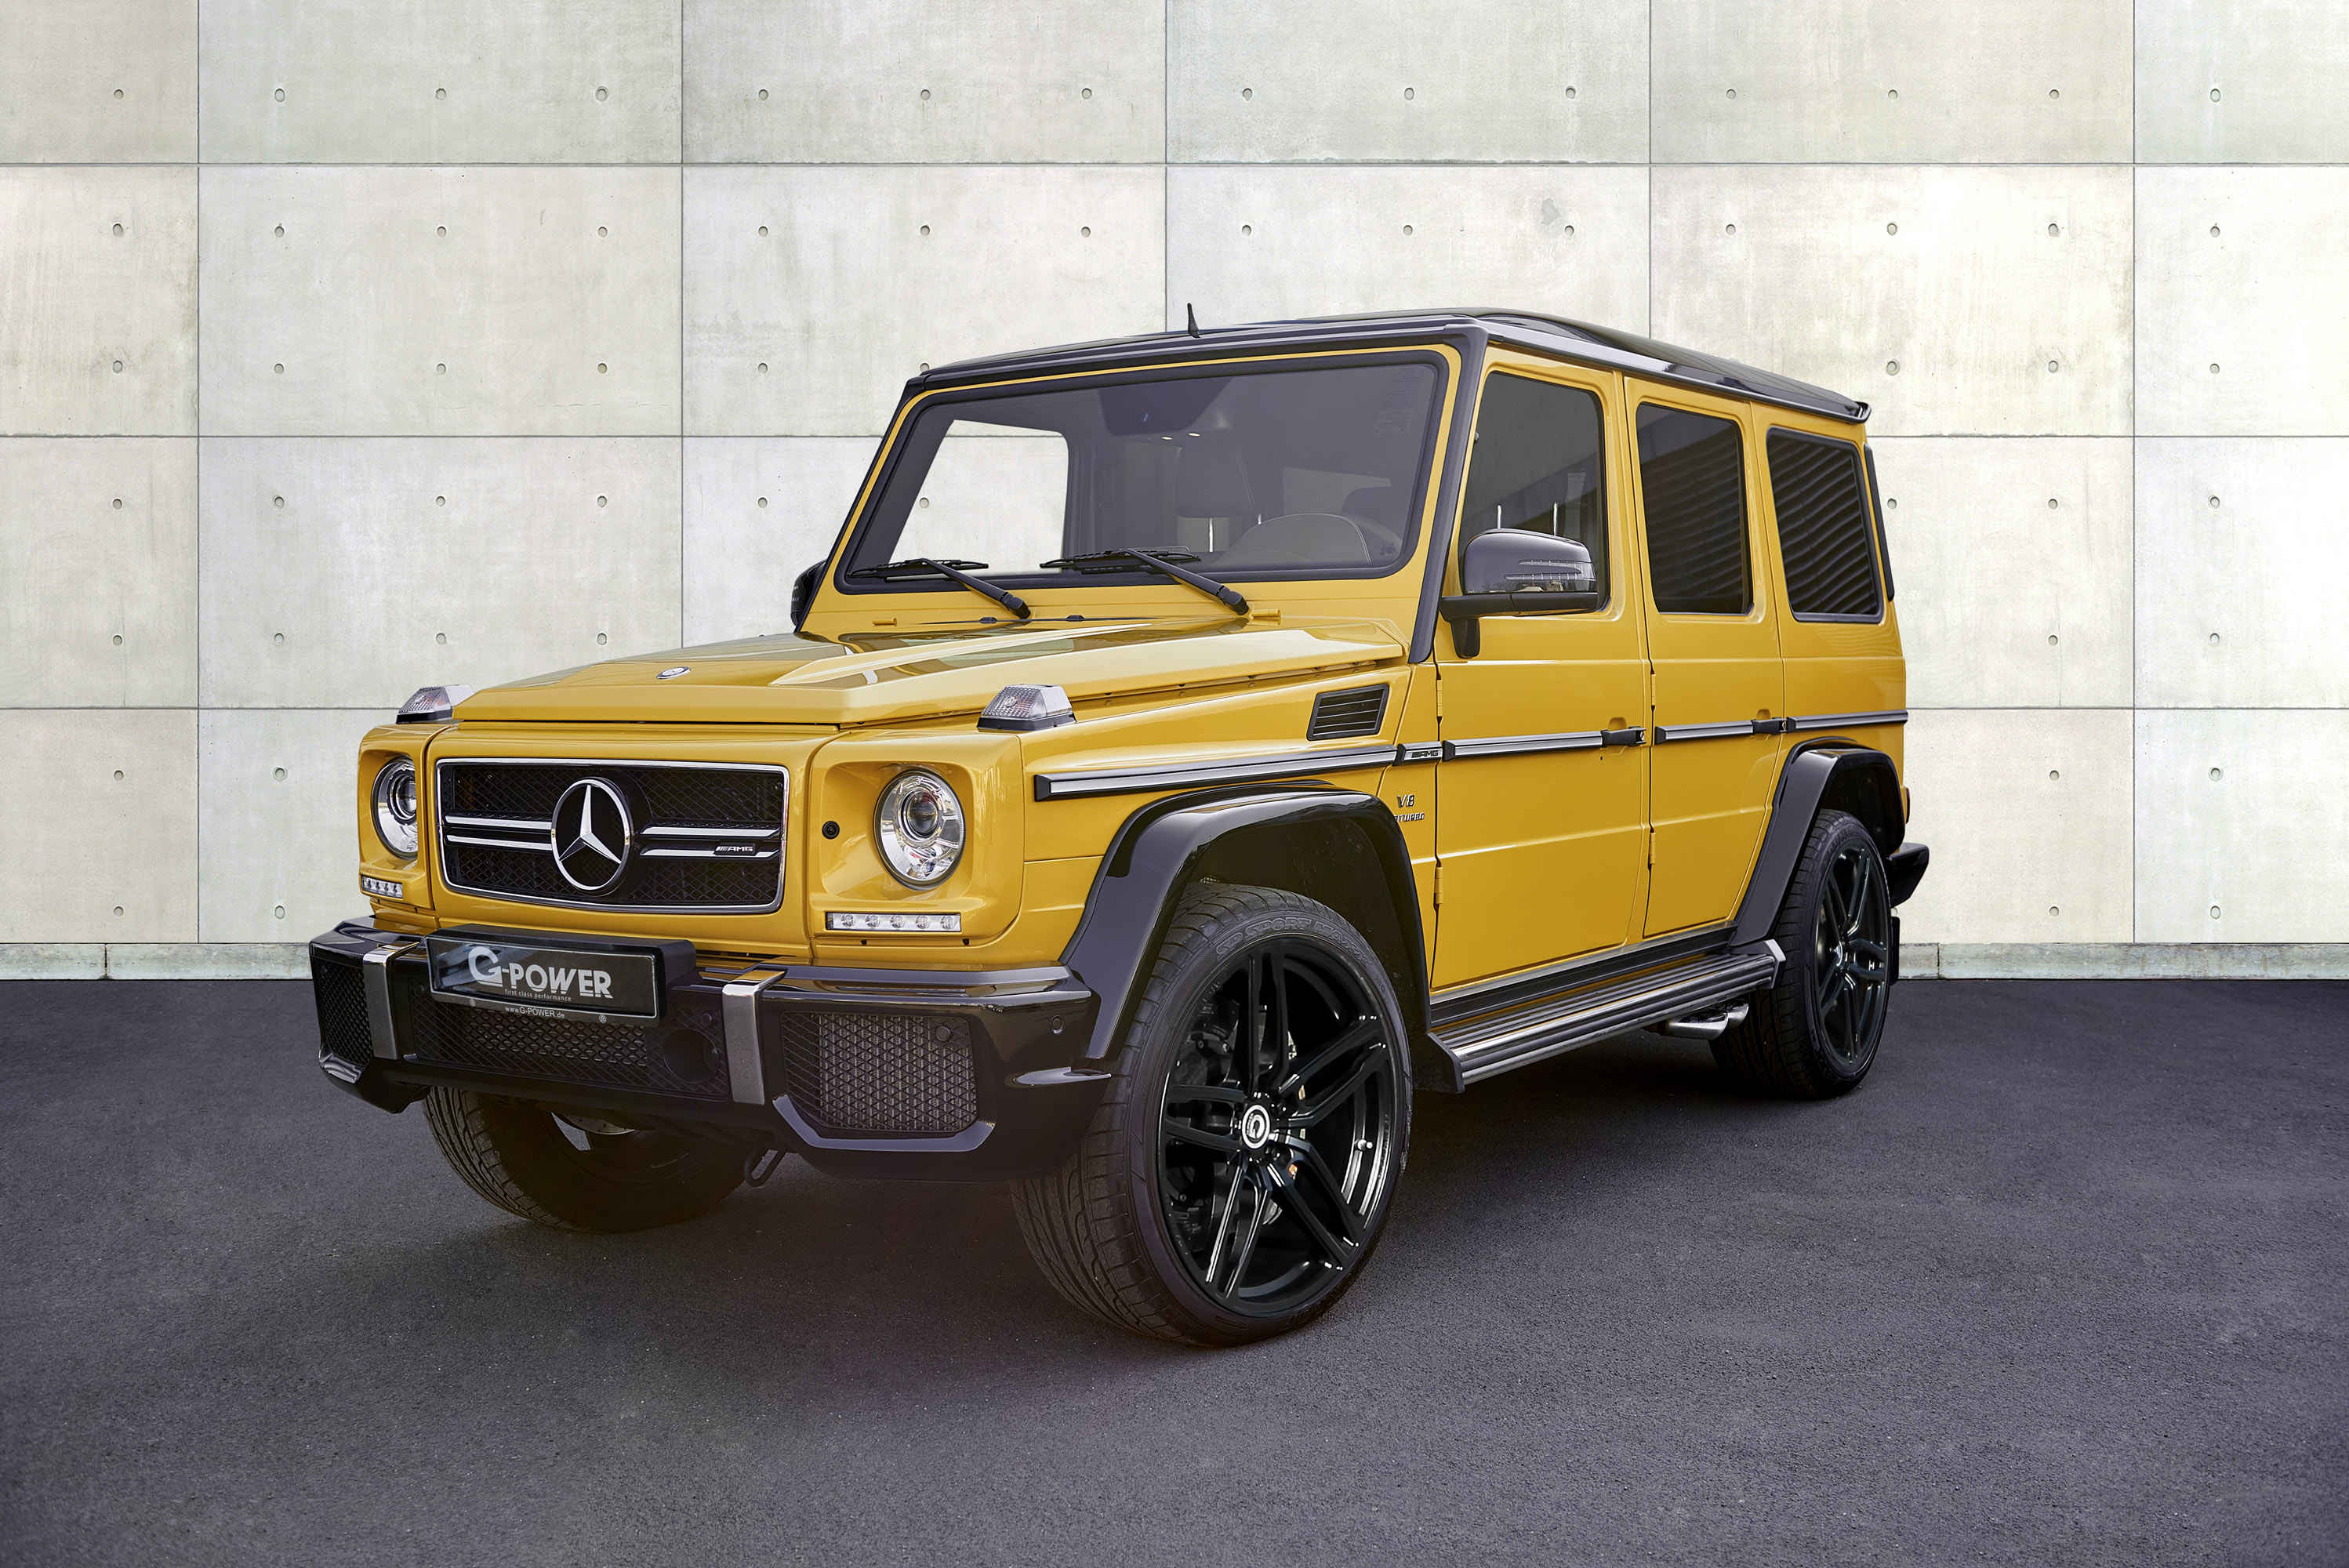 g power releases tuned mercedes amg g63. Black Bedroom Furniture Sets. Home Design Ideas